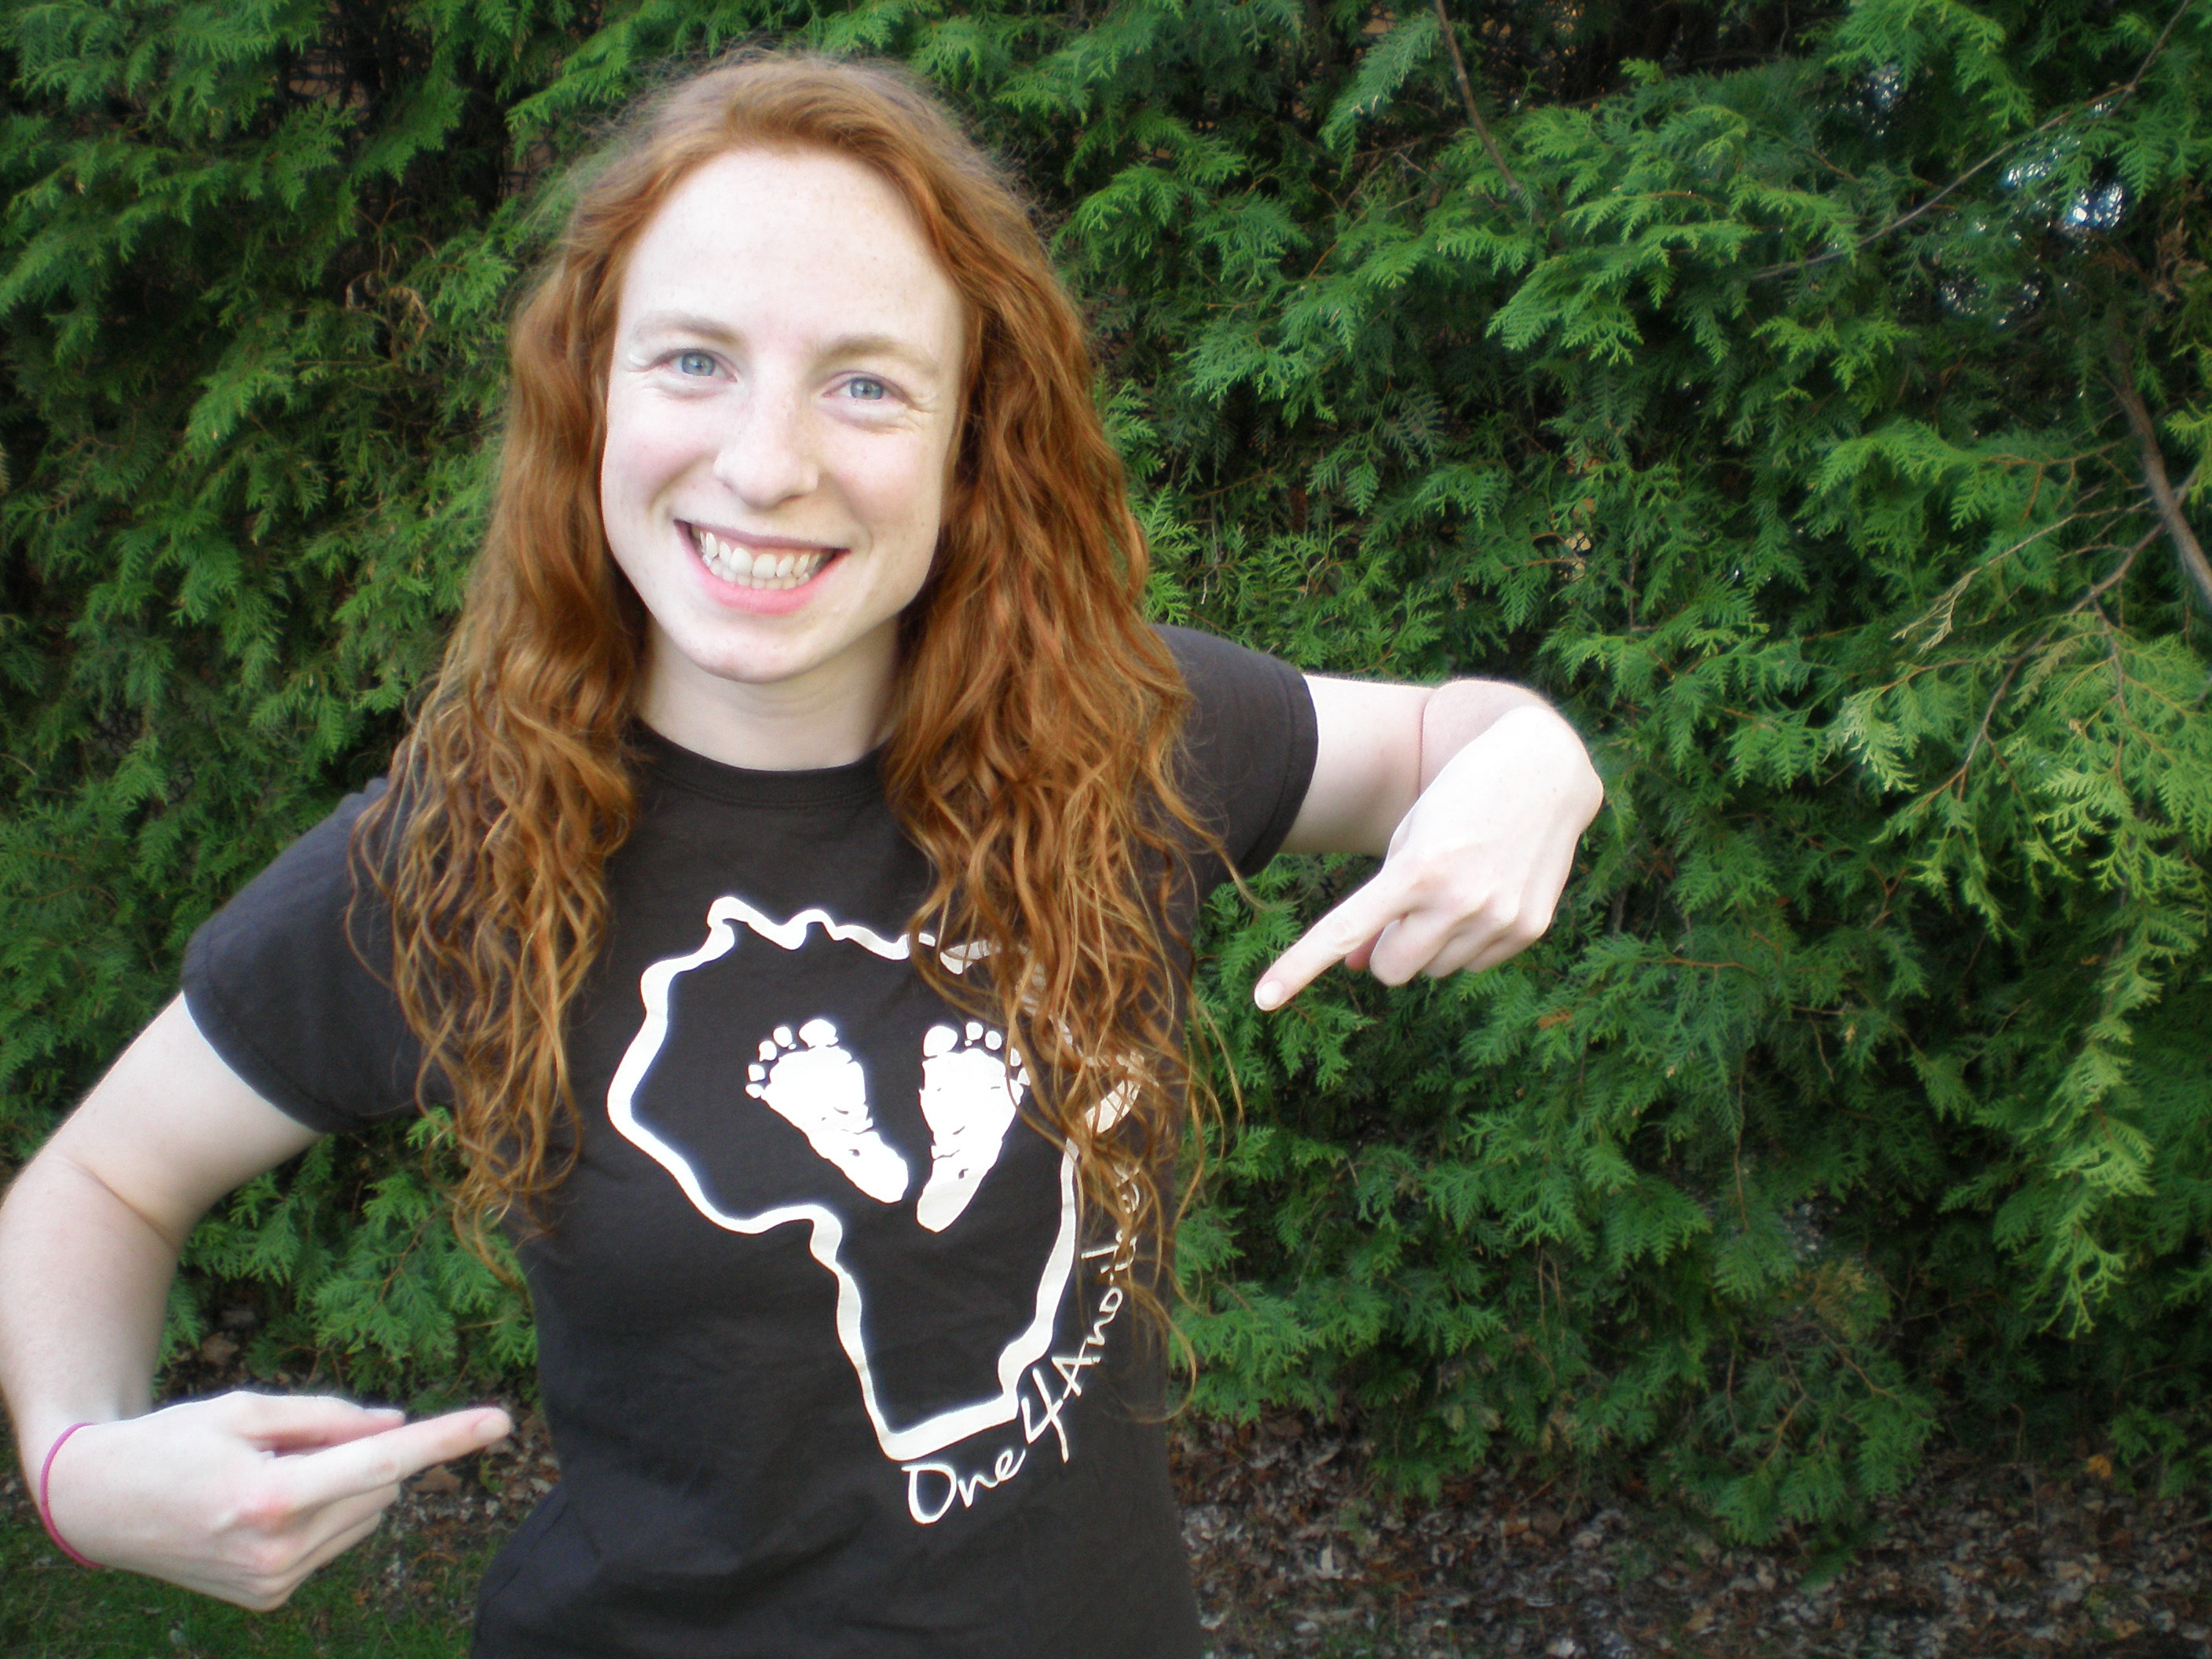 Hilary Sadowsky with One4Another t-shirt.